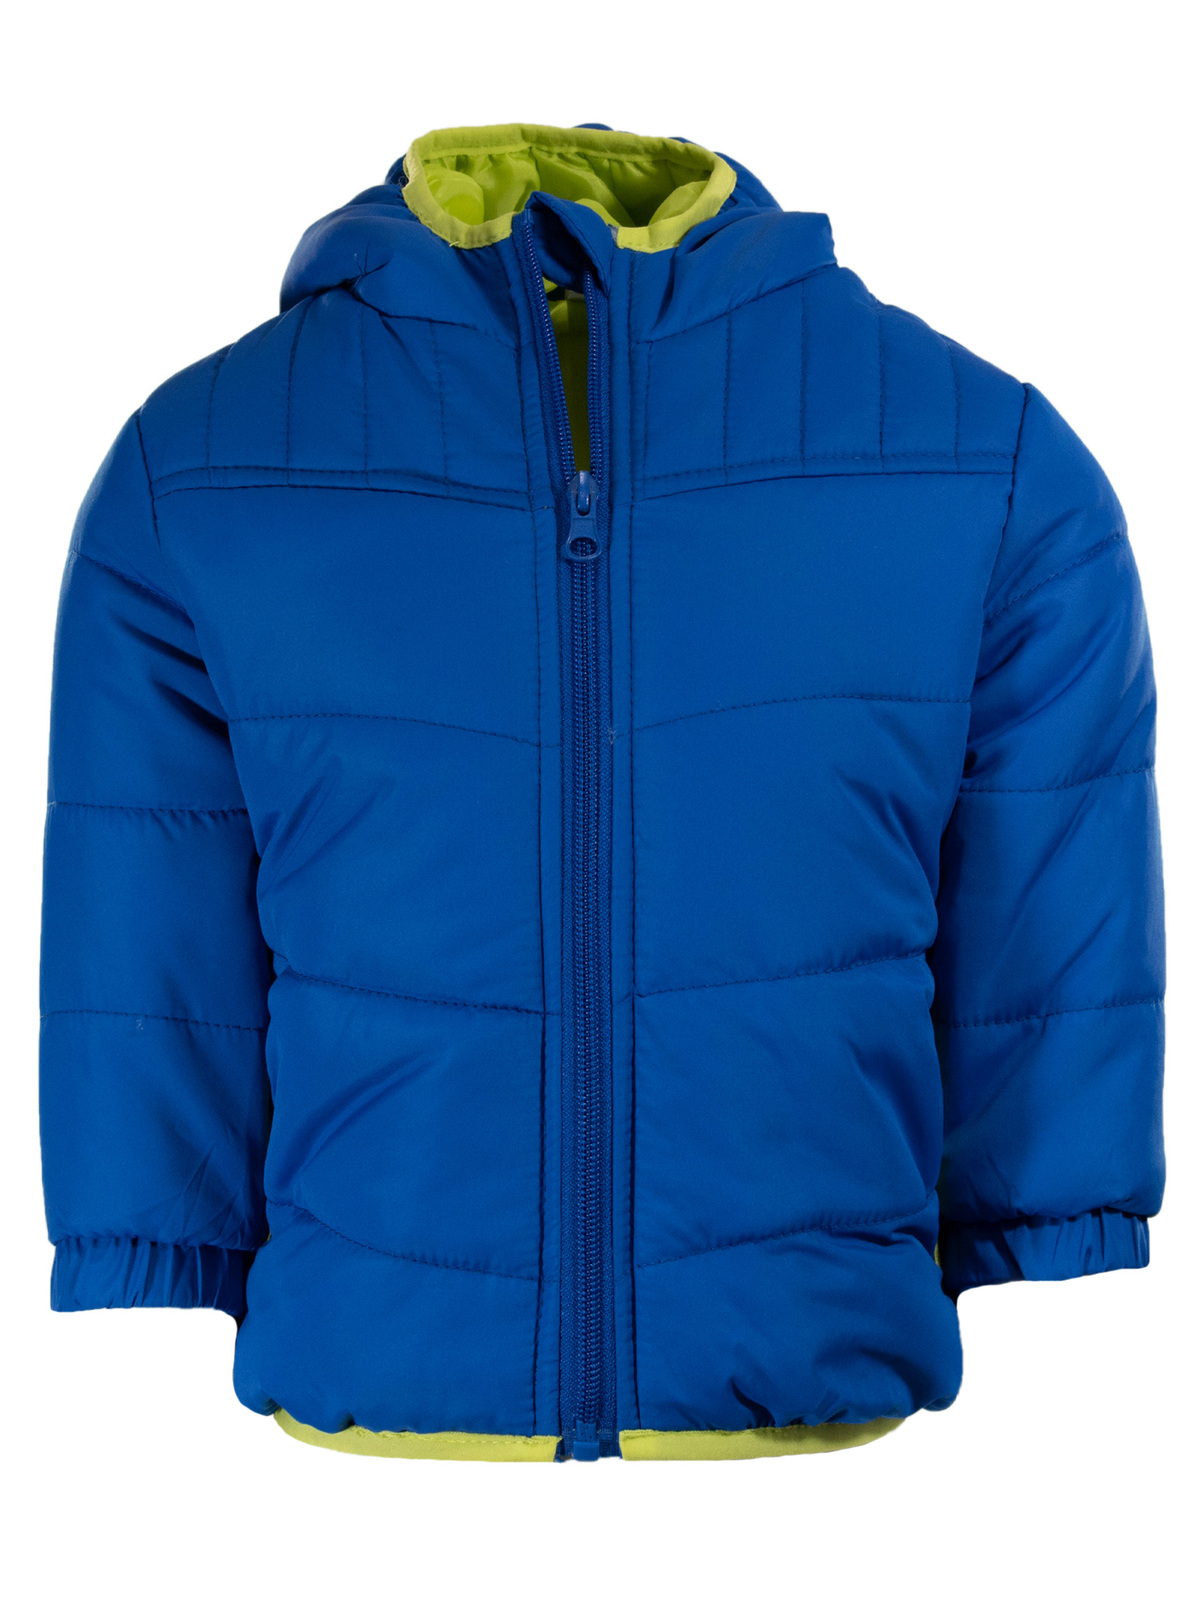 TXM INFANT BOY'S JACKET